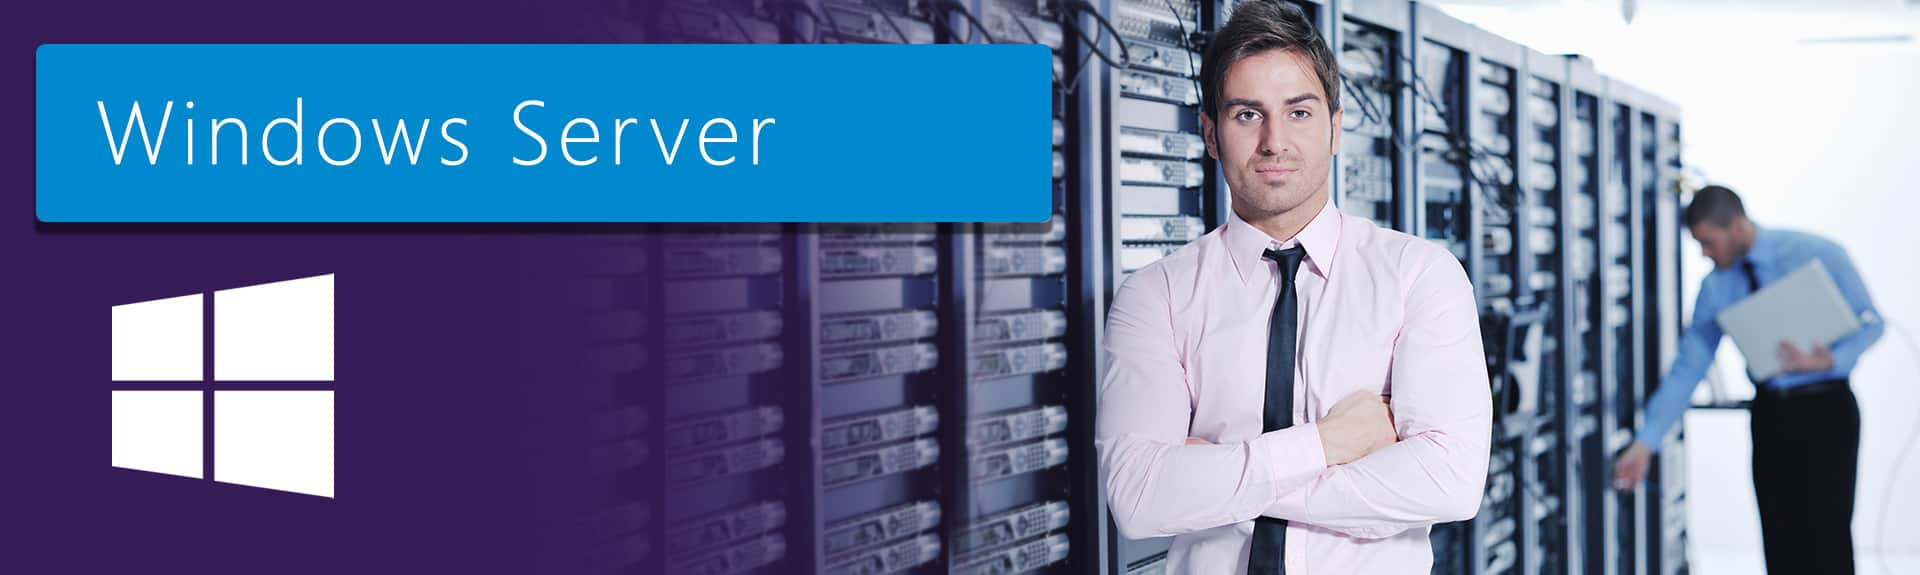 windows_server_2016_Courses_MAX_Technical_Training_1920x575